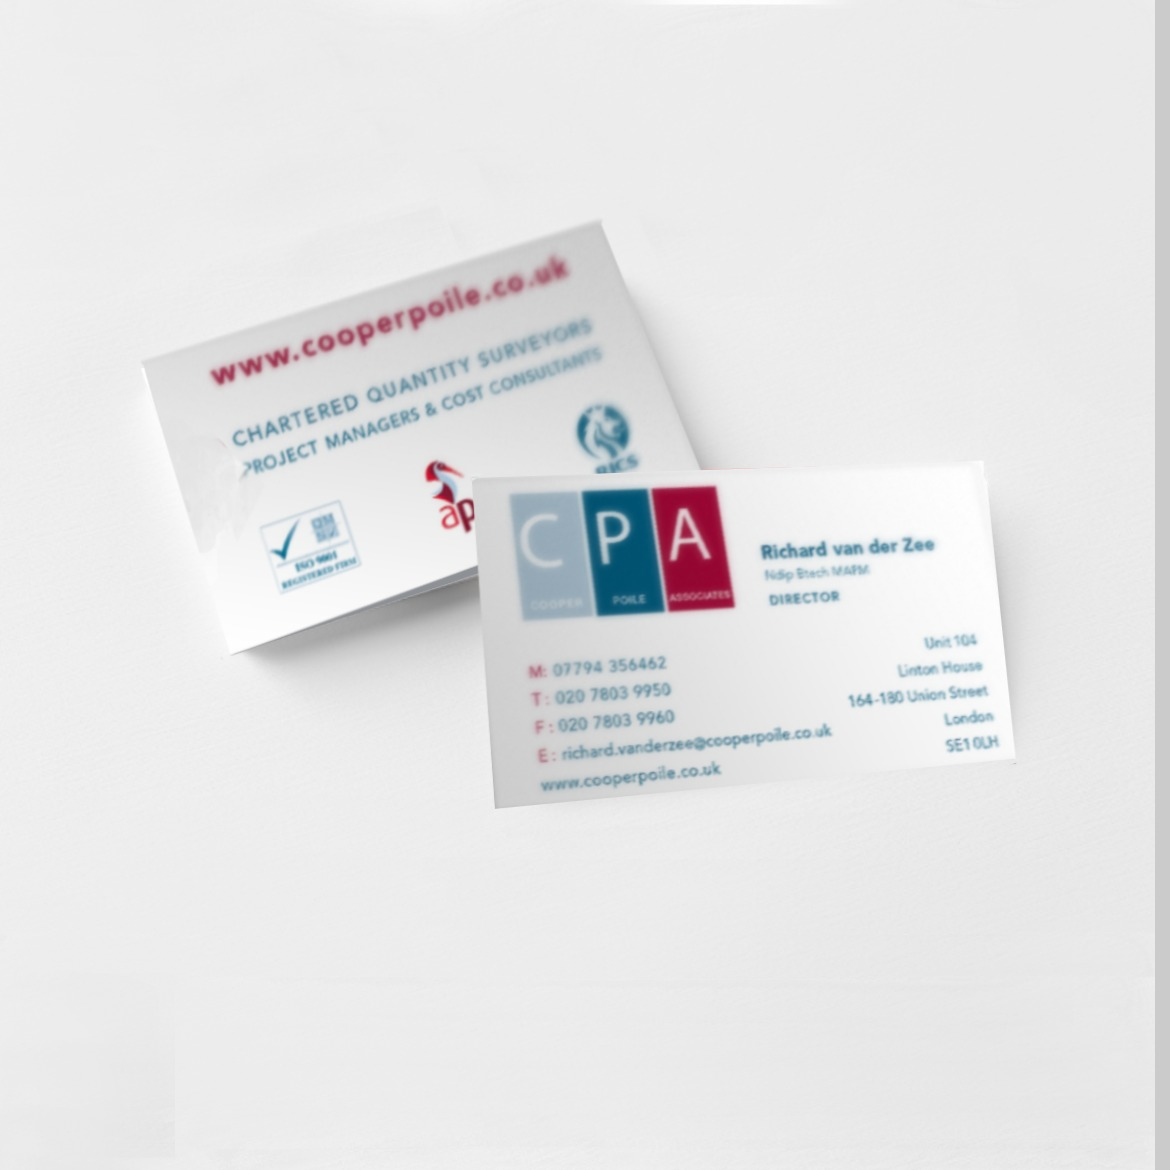 business cards printer in london for cpa